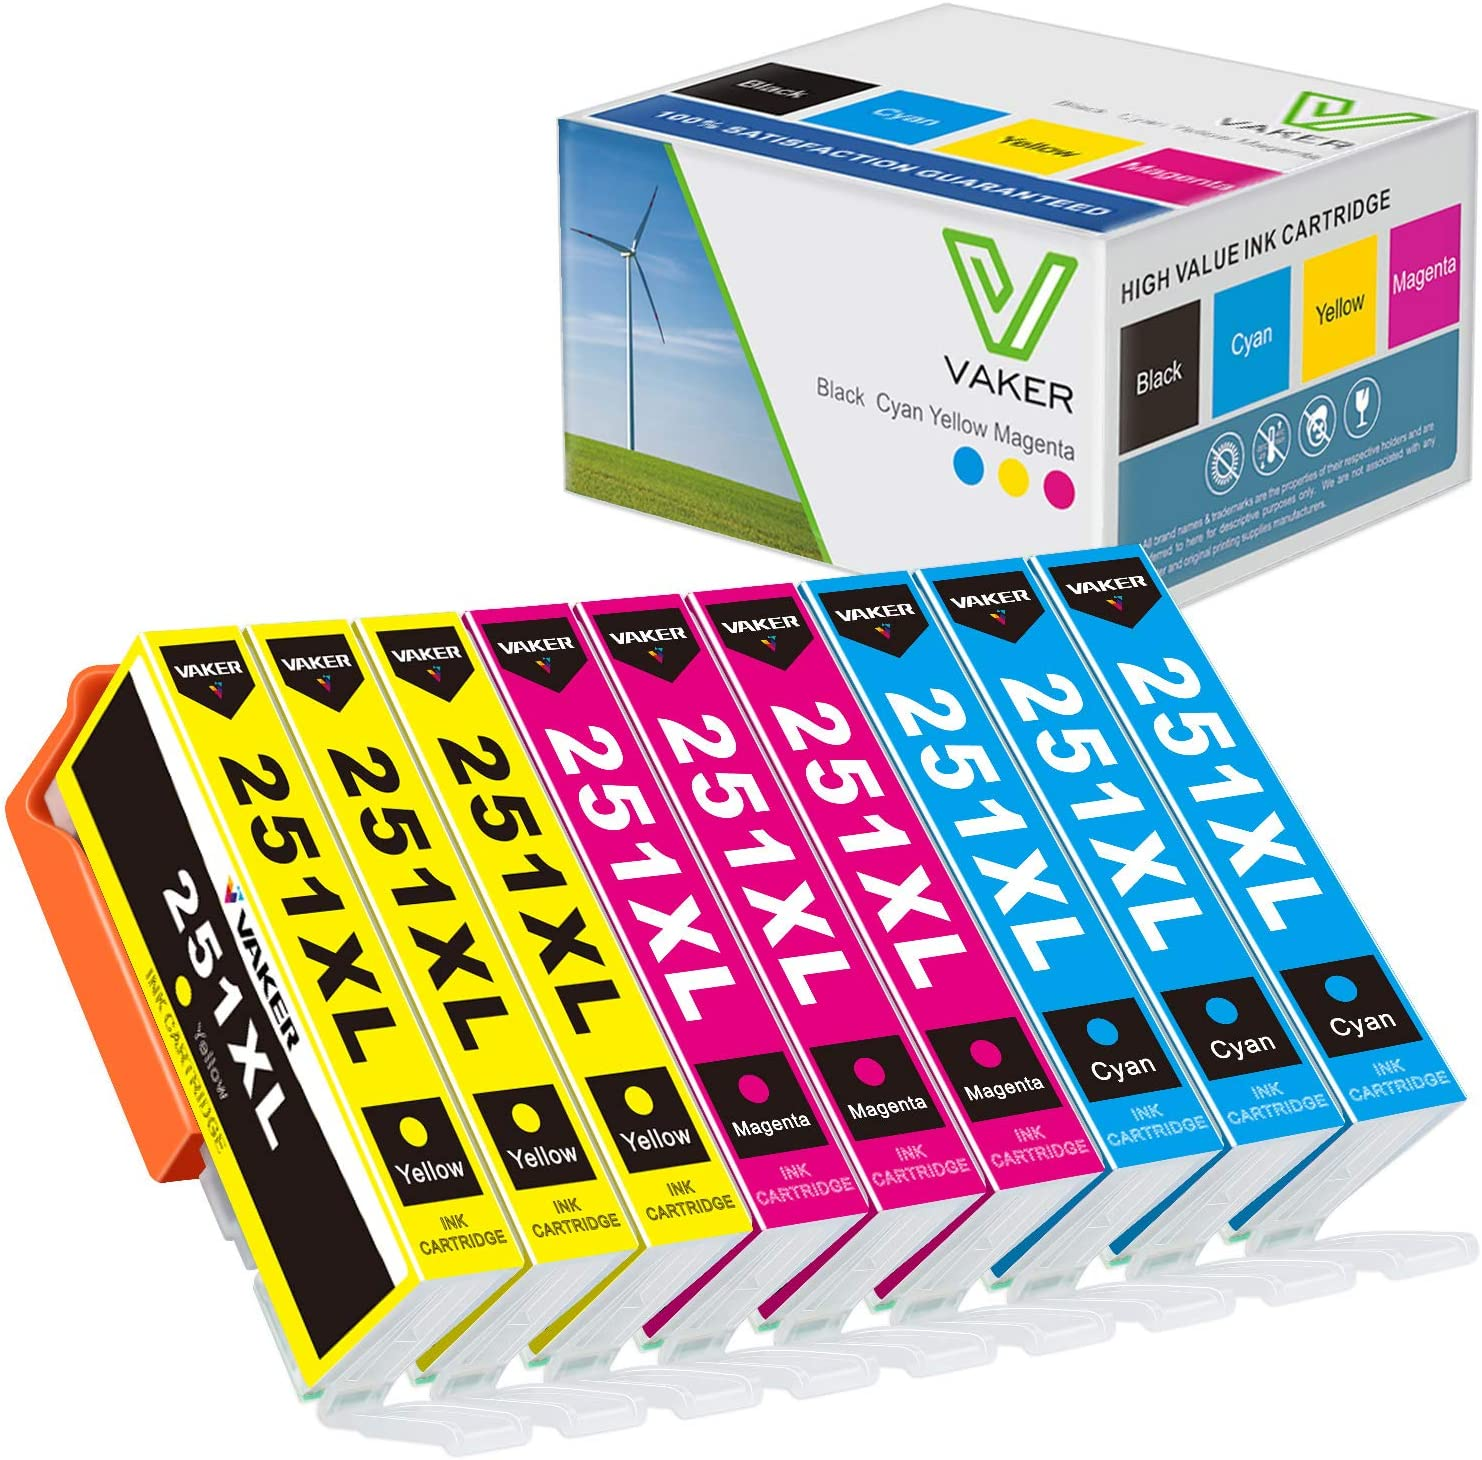 VAKER Compatible Canon 251 Inkjet Printer Ink Cartridge Tray Replacement for Canon CLI-251 XL 251 XL to fit with PIXMA MX922 MX722 MX920 MG7520 MG5520 MG5420 MG7120 MG6320 Printer (9 Pack)